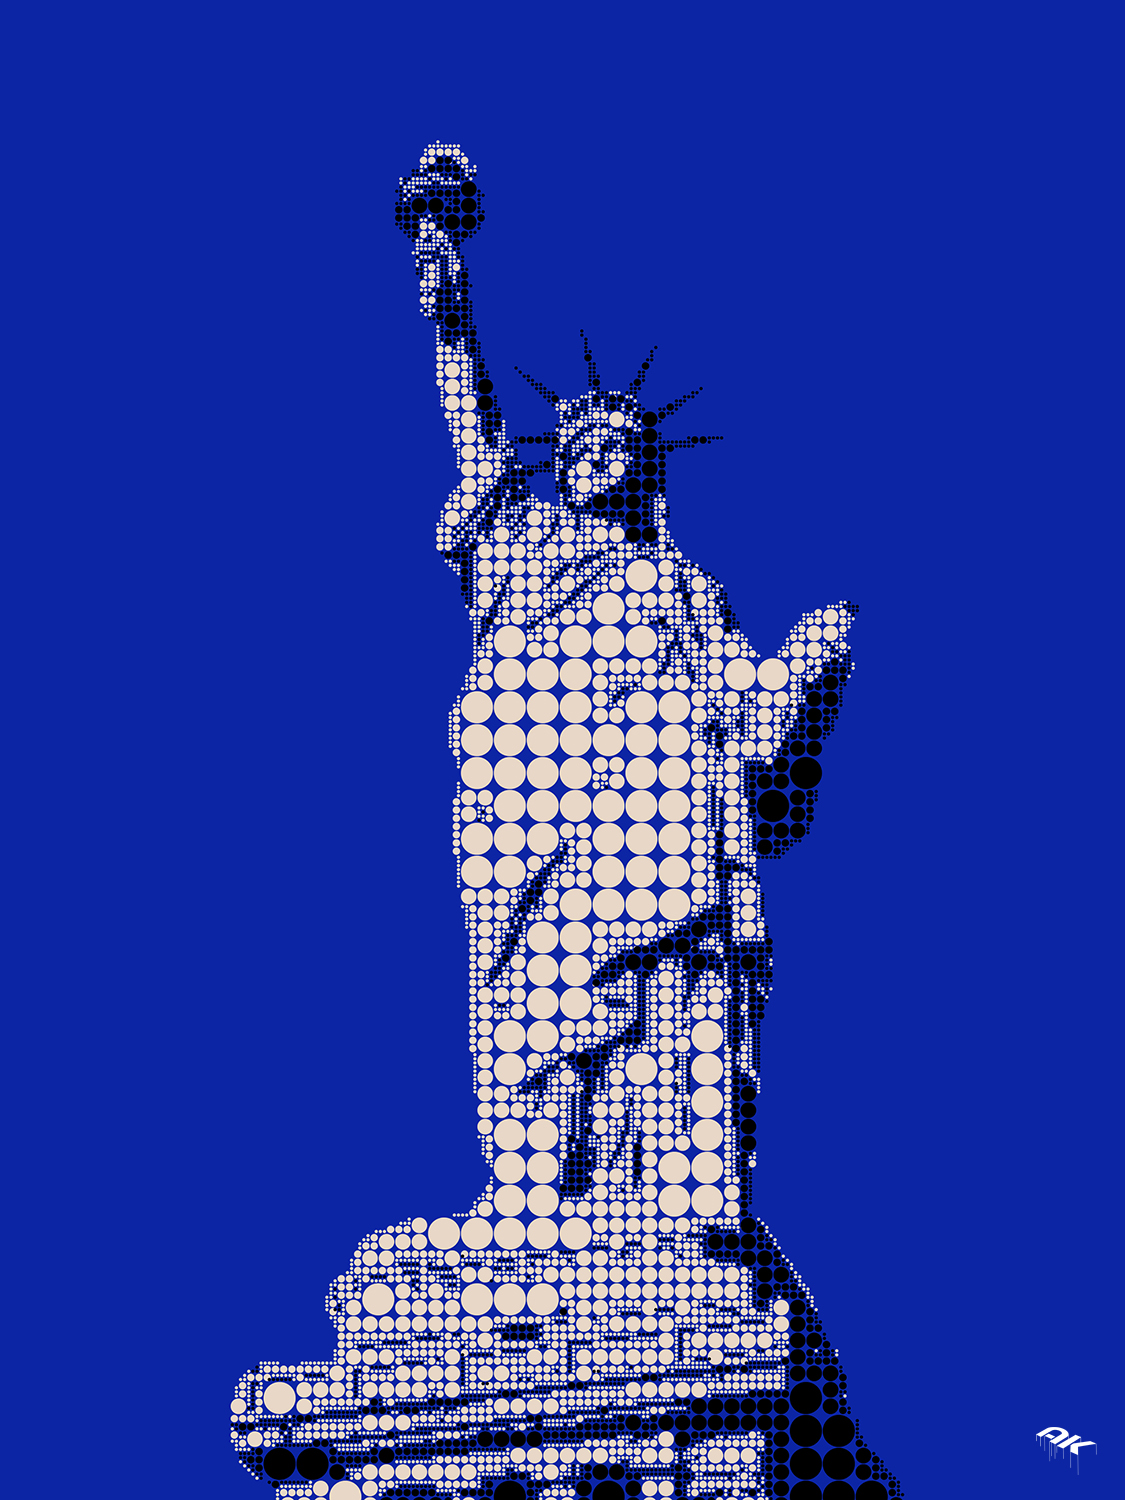 dots-statue-of-liberty-copyright-andrew-knutt